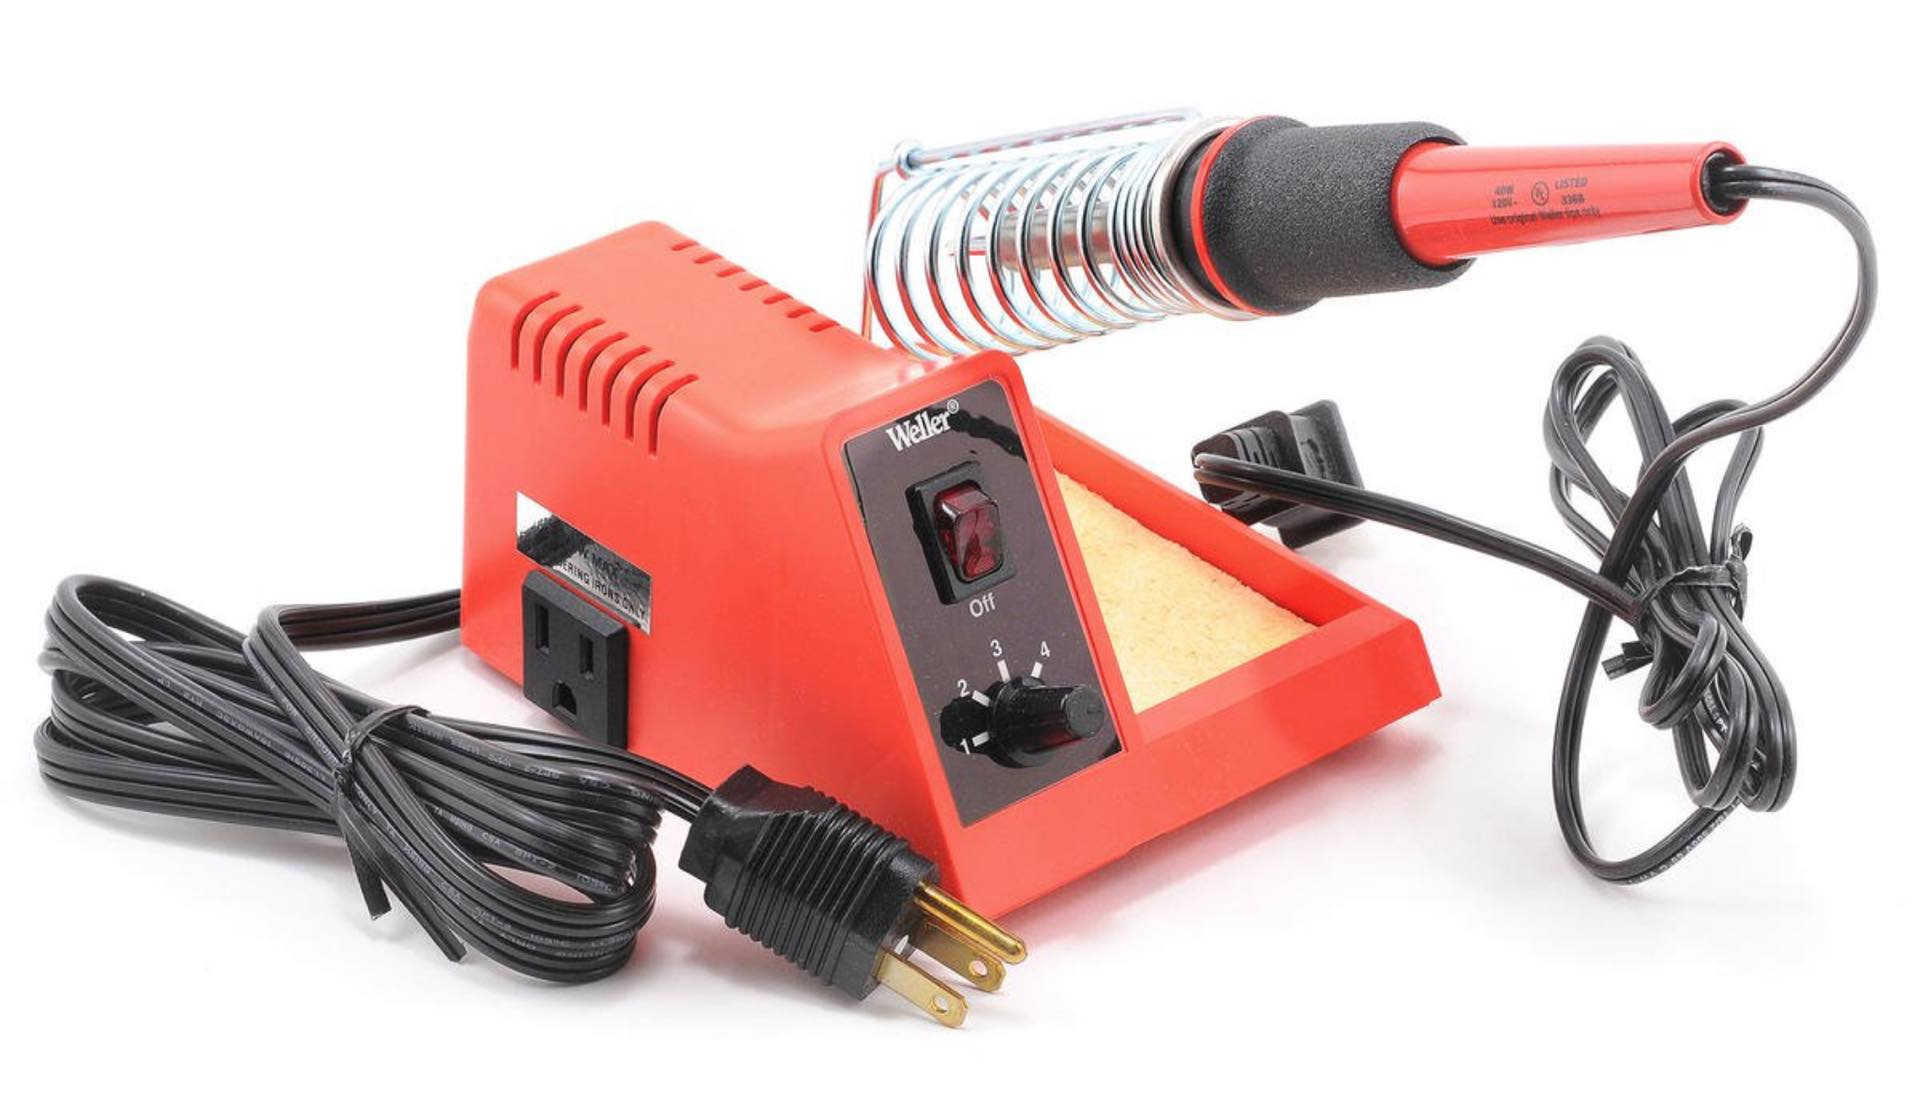 Weller Wlc100 40 Watt Soldering Station Tools And Toys Gun For Circuit Boards What Kind Of Wattage